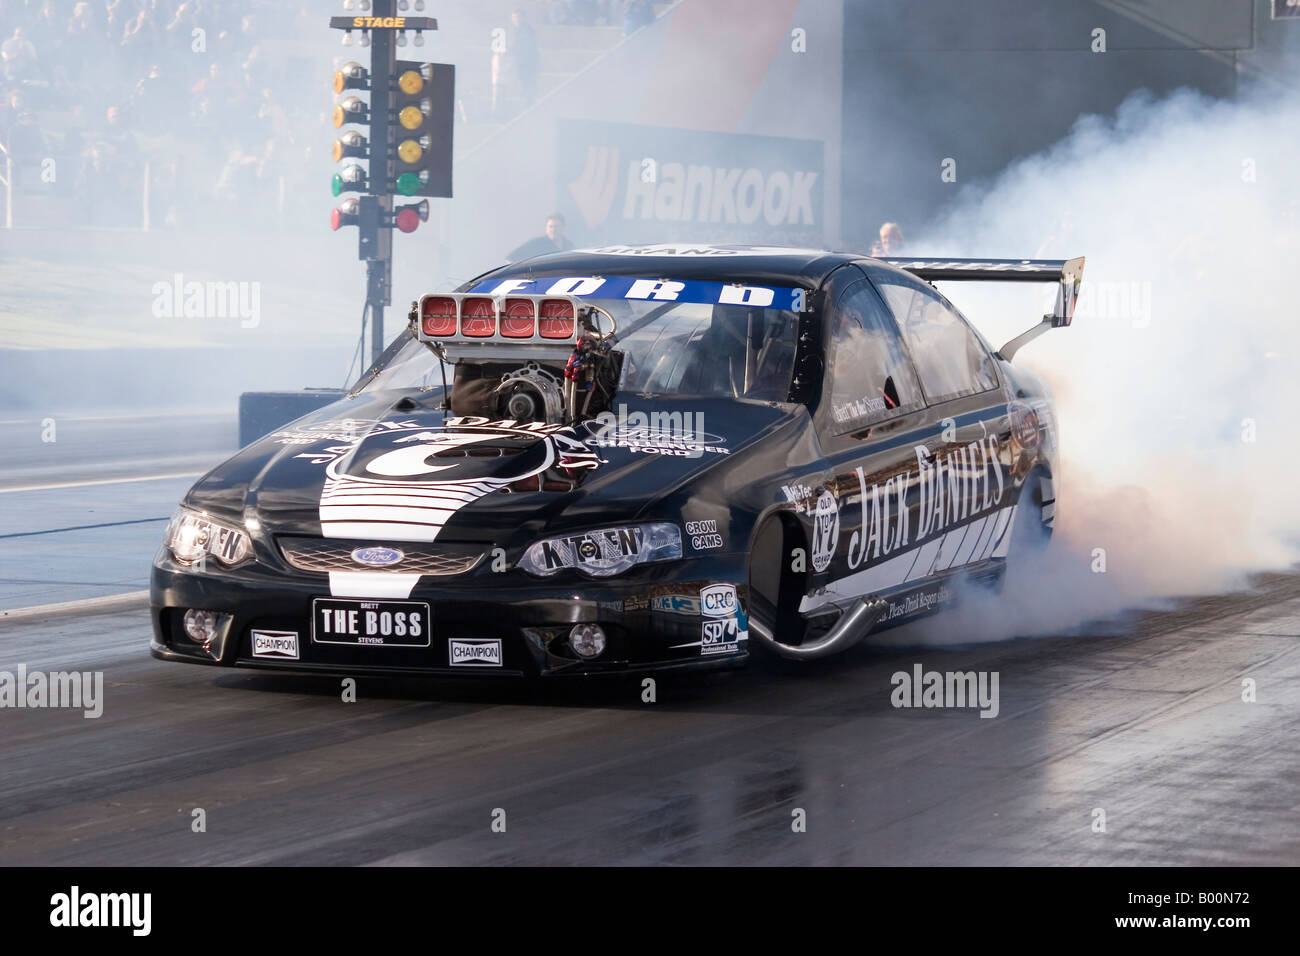 How To Sell A Car On Doorslammers Drag Racing